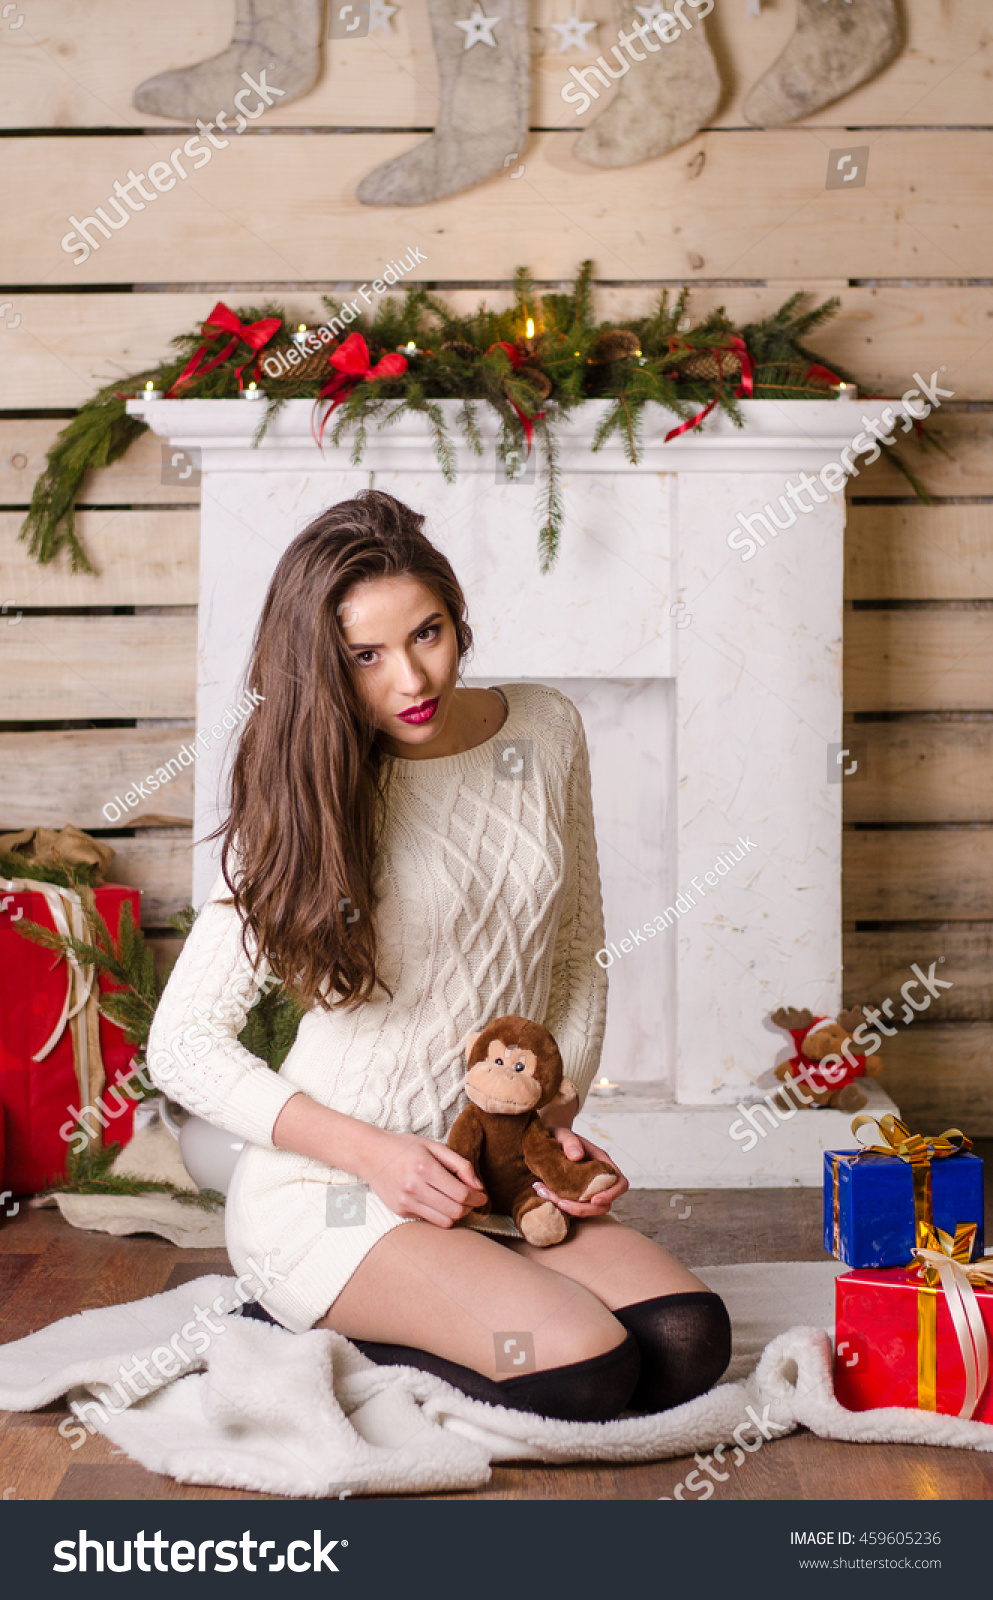 20f75e3c59 Beautiful sexy woman with Xmas tree in background sitting on elegant chair  in cozy scenery.